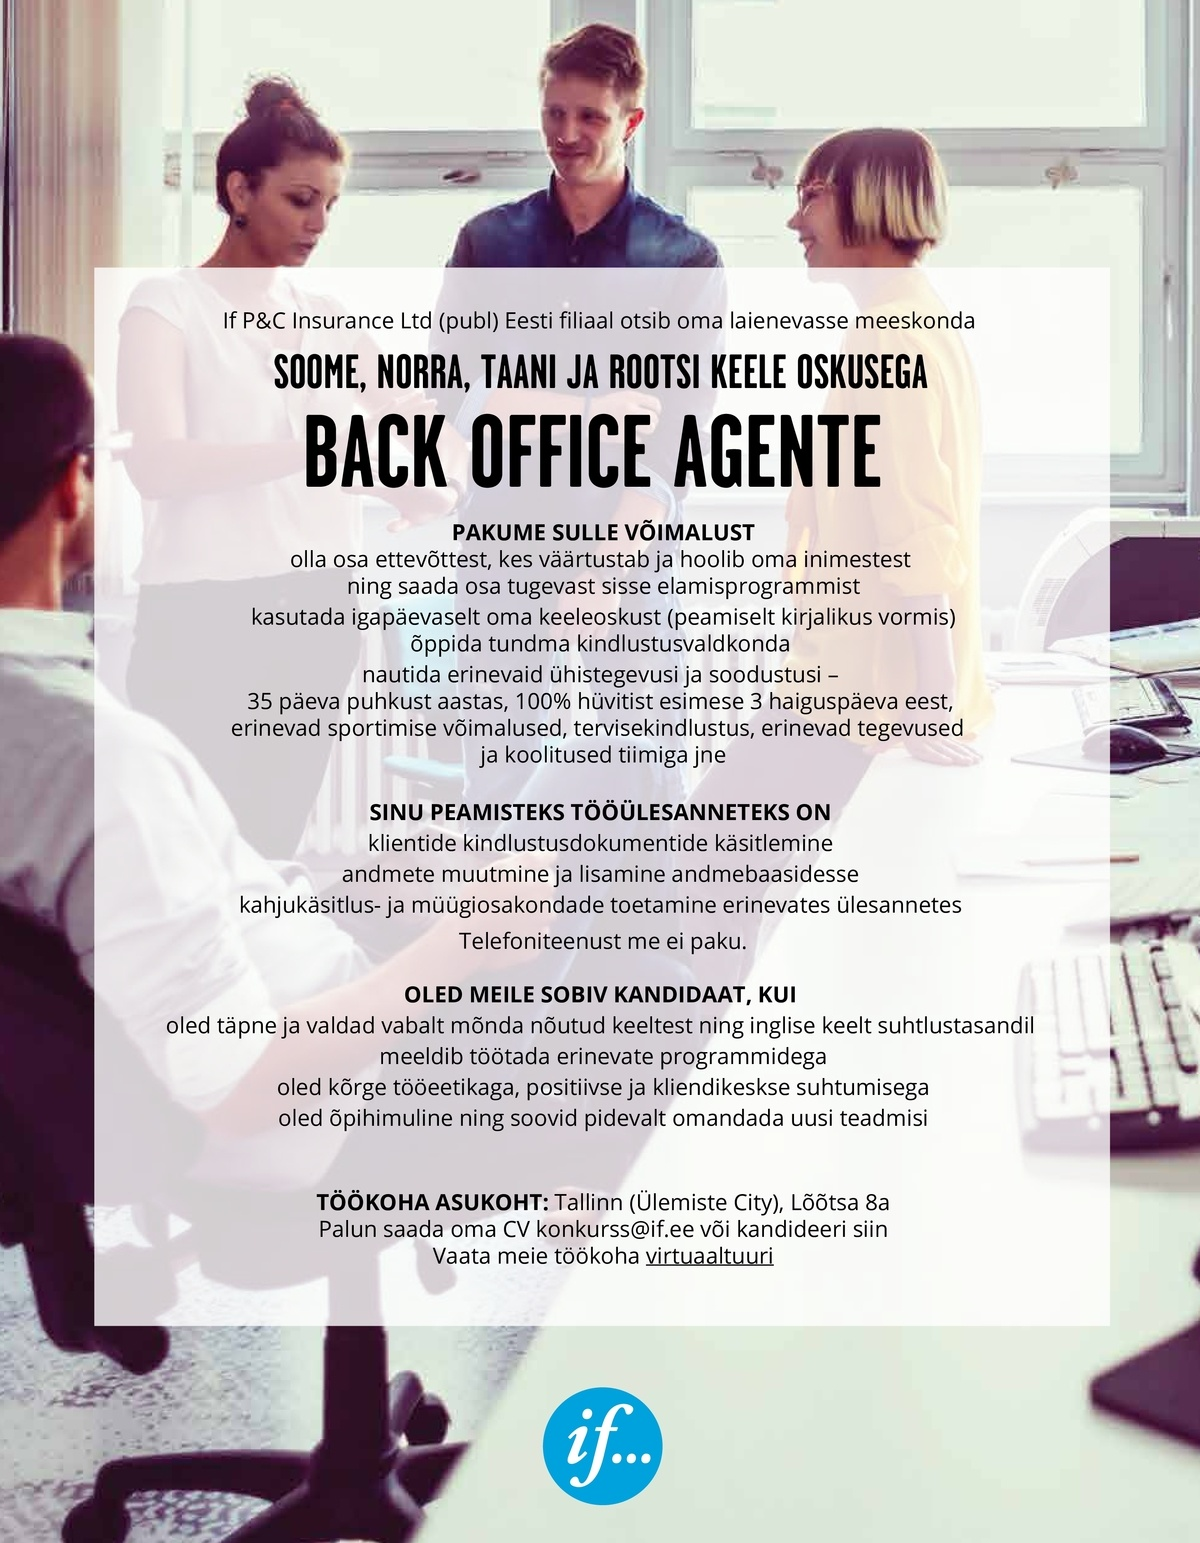 If P&C Insurance Ltd (publ) Eesti filiaal BACK OFFICE AGENT